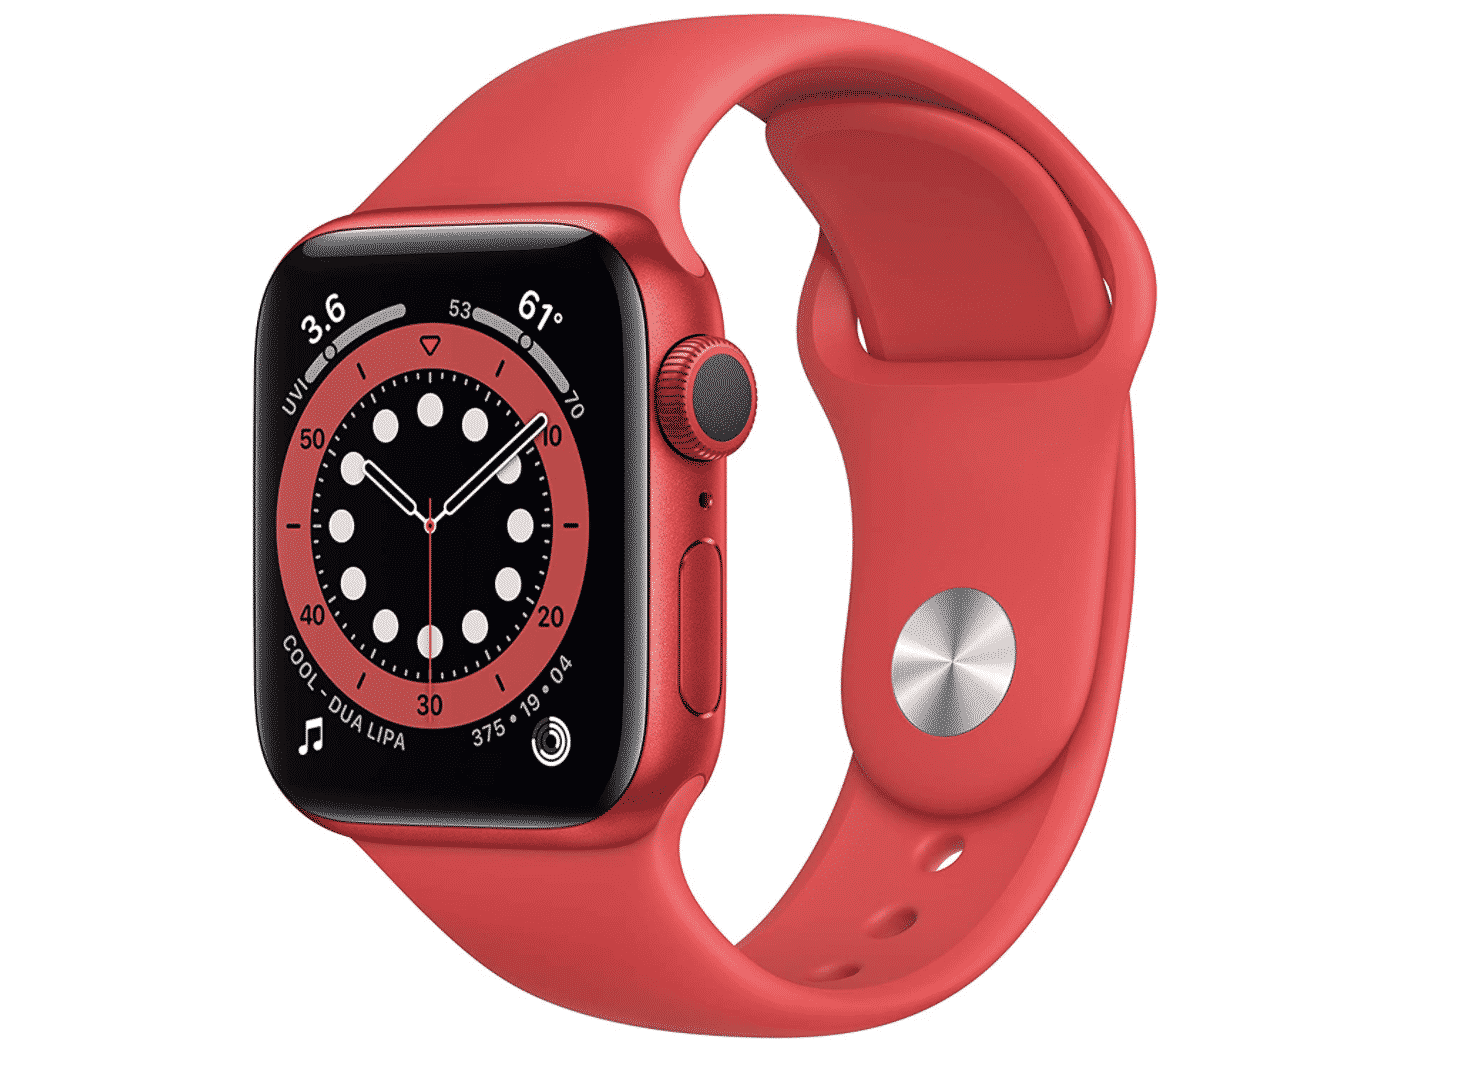 Take $65 Off the Apple Watch Series 6